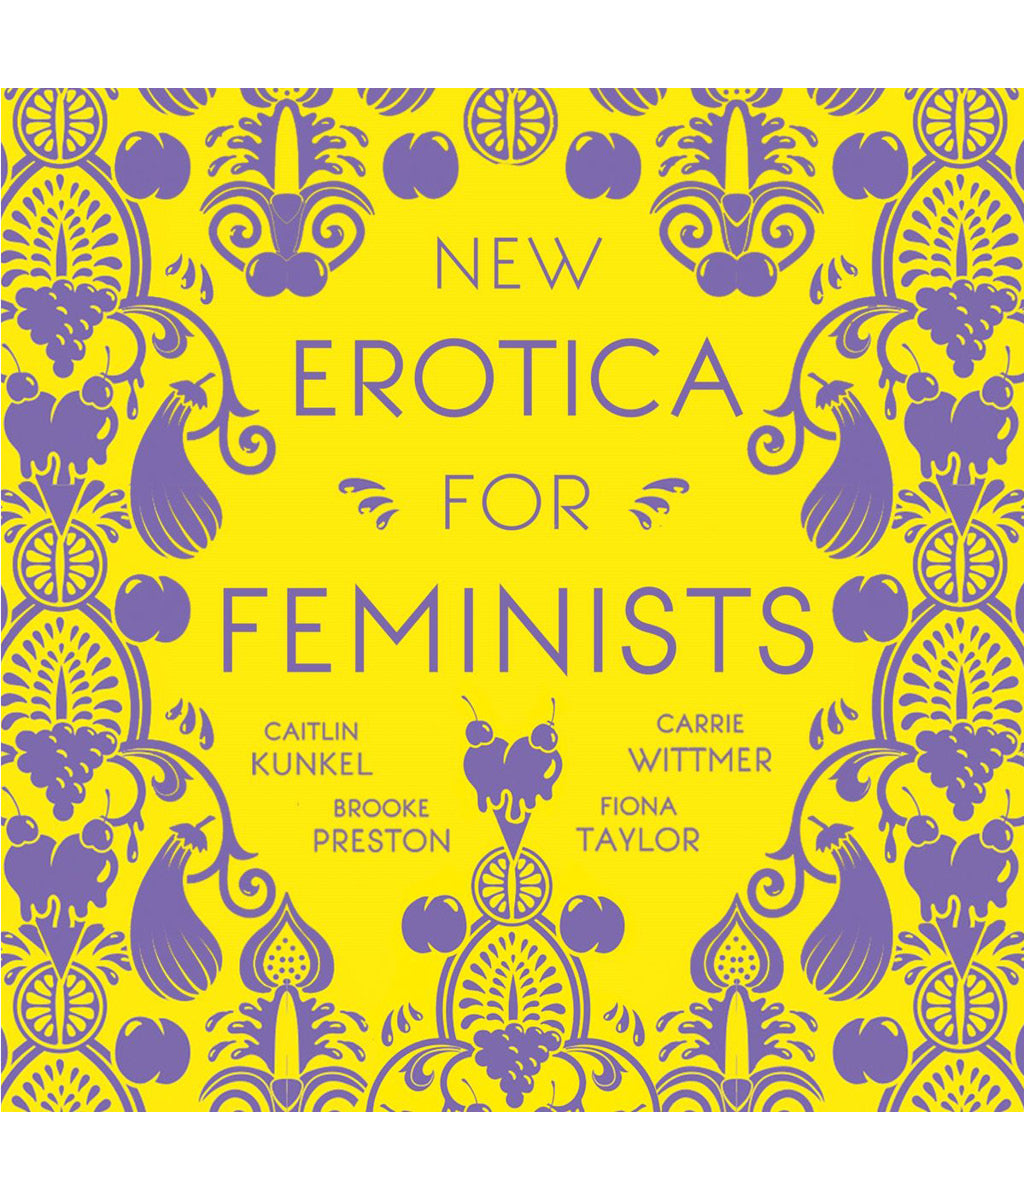 New Erotica for Feminists: This year's must-have satirical stocking stuffer by Caitlin Kunke, Brooke Preston, Fiona Taylor, Carrie Wittmer